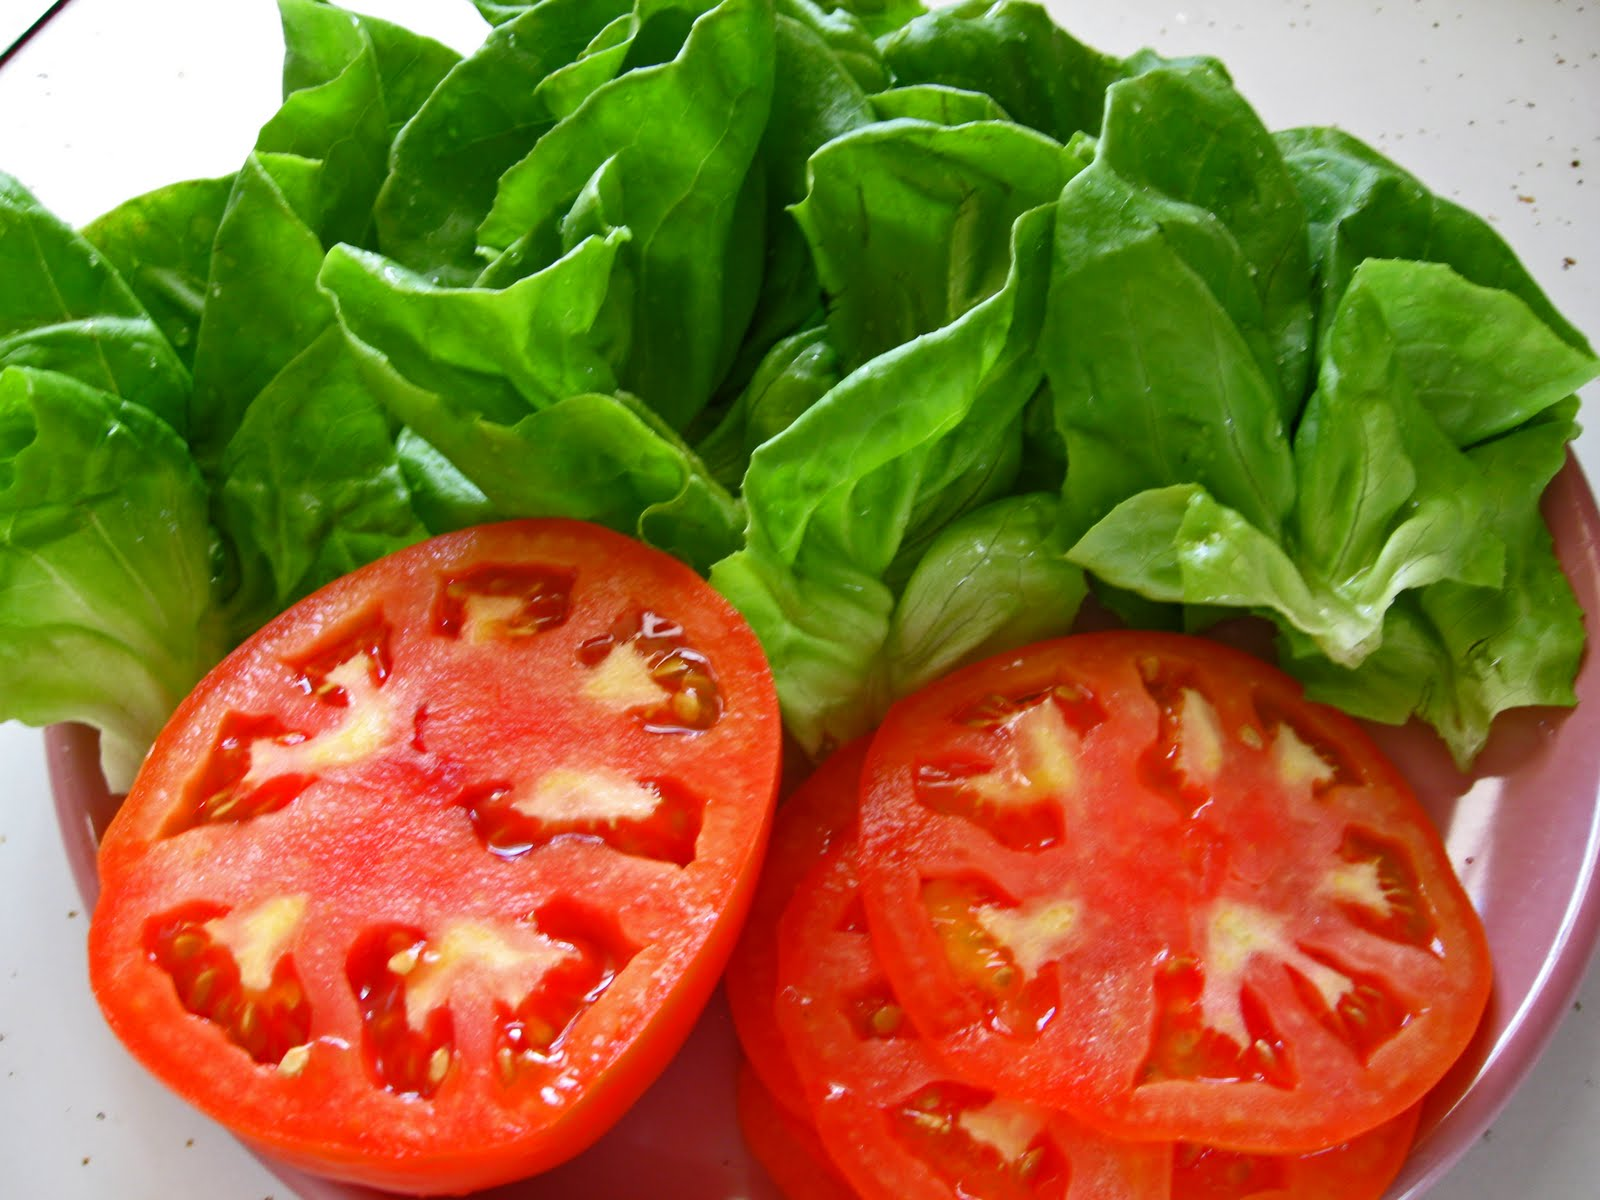 Discussion on this topic: Mango Chicken Lettuce Wraps, mango-chicken-lettuce-wraps/